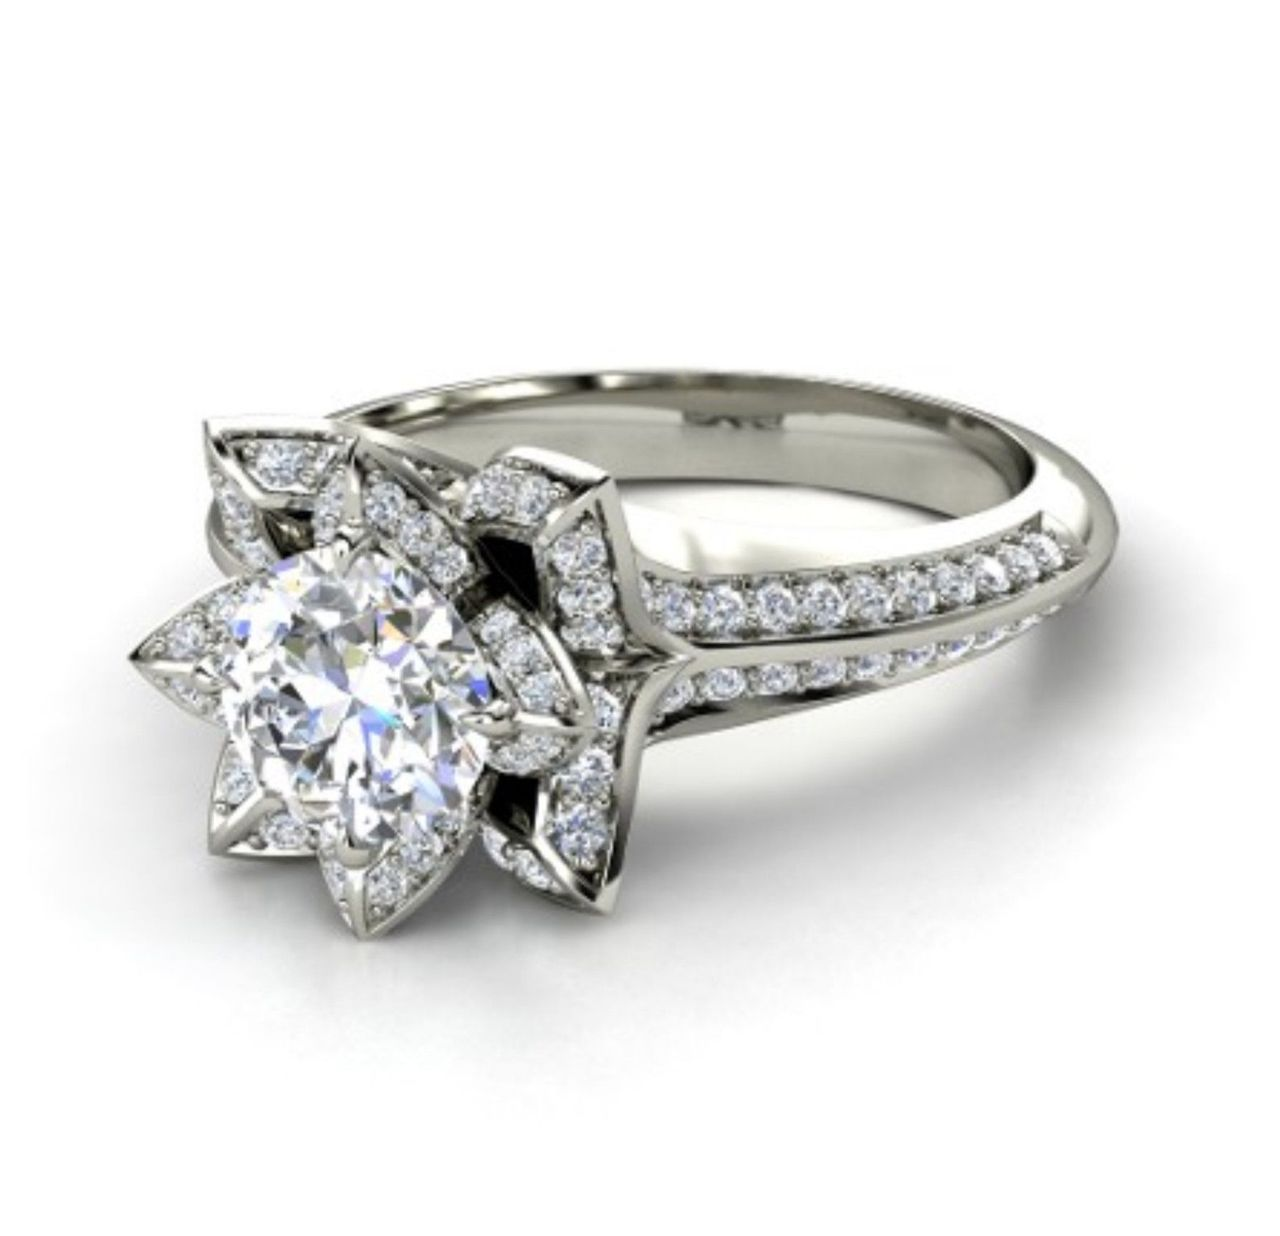 rings of engagement diamond wedding start with life dream your